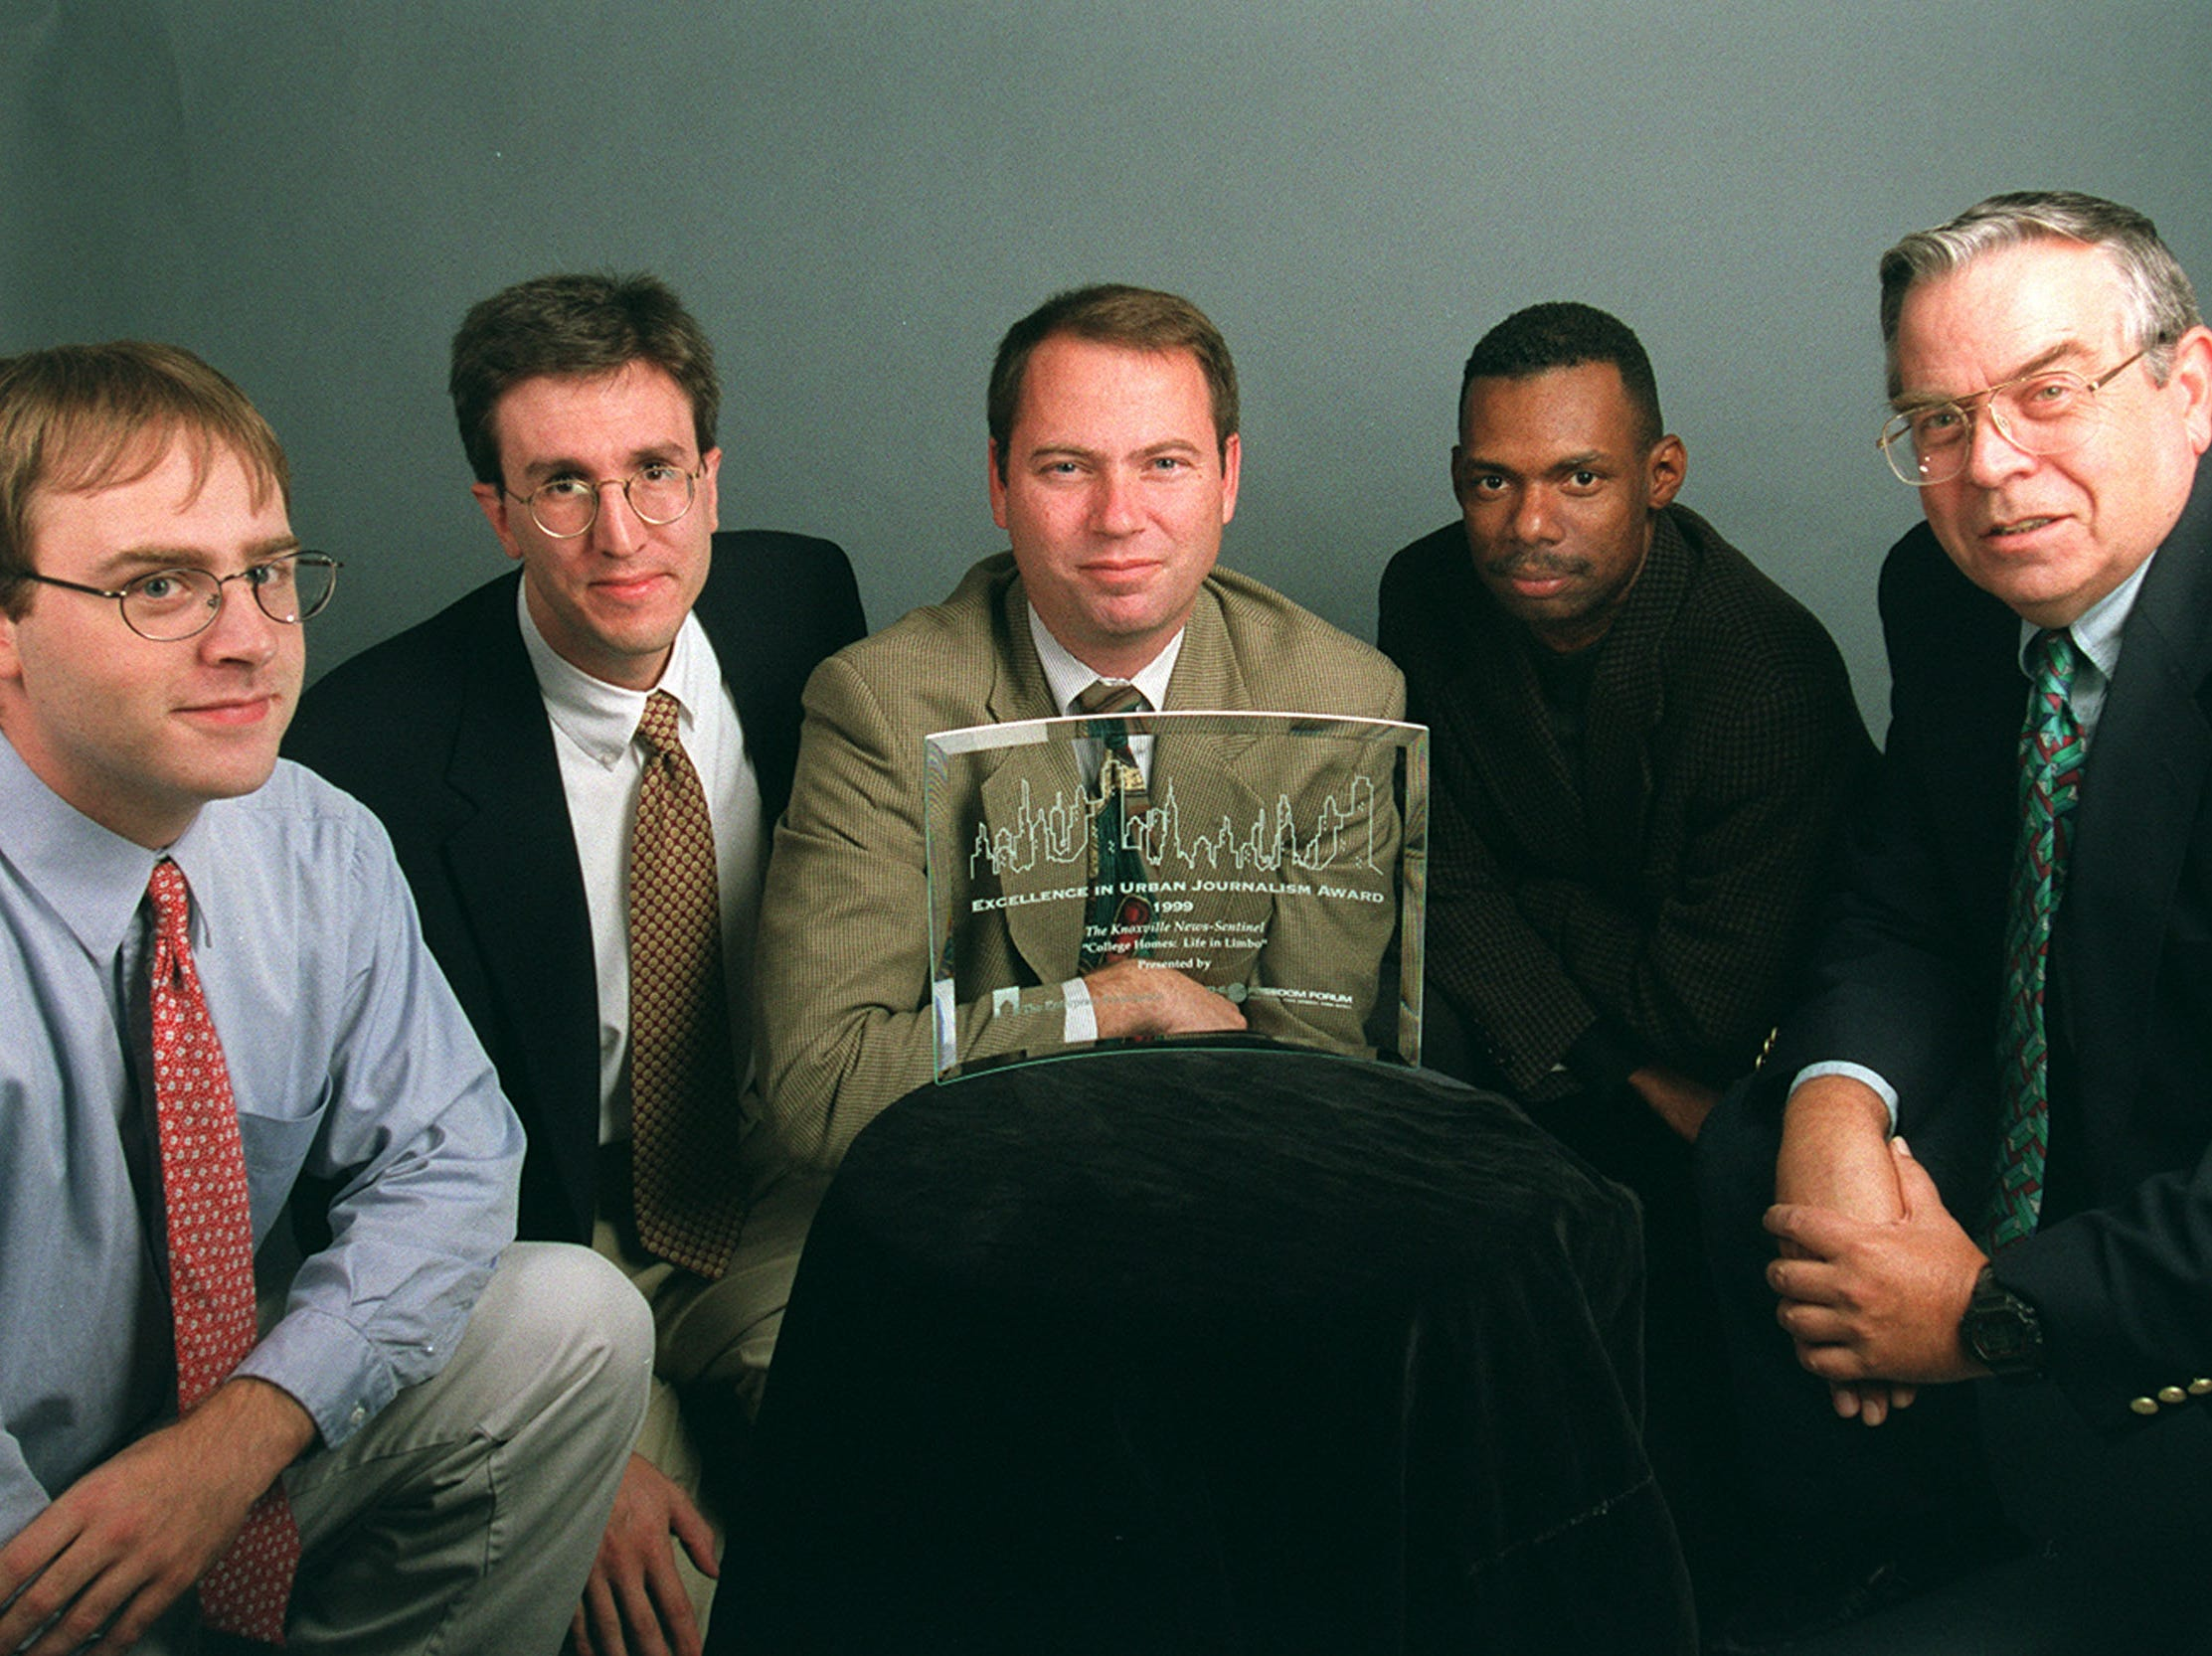 """Knoxville News-Sentinel reporter Jacques Billeaud, left, reporter David Keim, photographer Paul Efird, reporter Add Seymour and copy editor Gerry Segroves are shown on Oct. 22, 1999, after winning the 1999 Excellence in Journalism Award for their collaboration on """"College Homes: Life in Limbo,"""" an eight-page section published April 12, 1998. Given by The Enterprise Foundation and The Freedom Forum, the Excellence in Urban Journalism Award recognizes quality reporting on issues facing the nation's urban areas."""